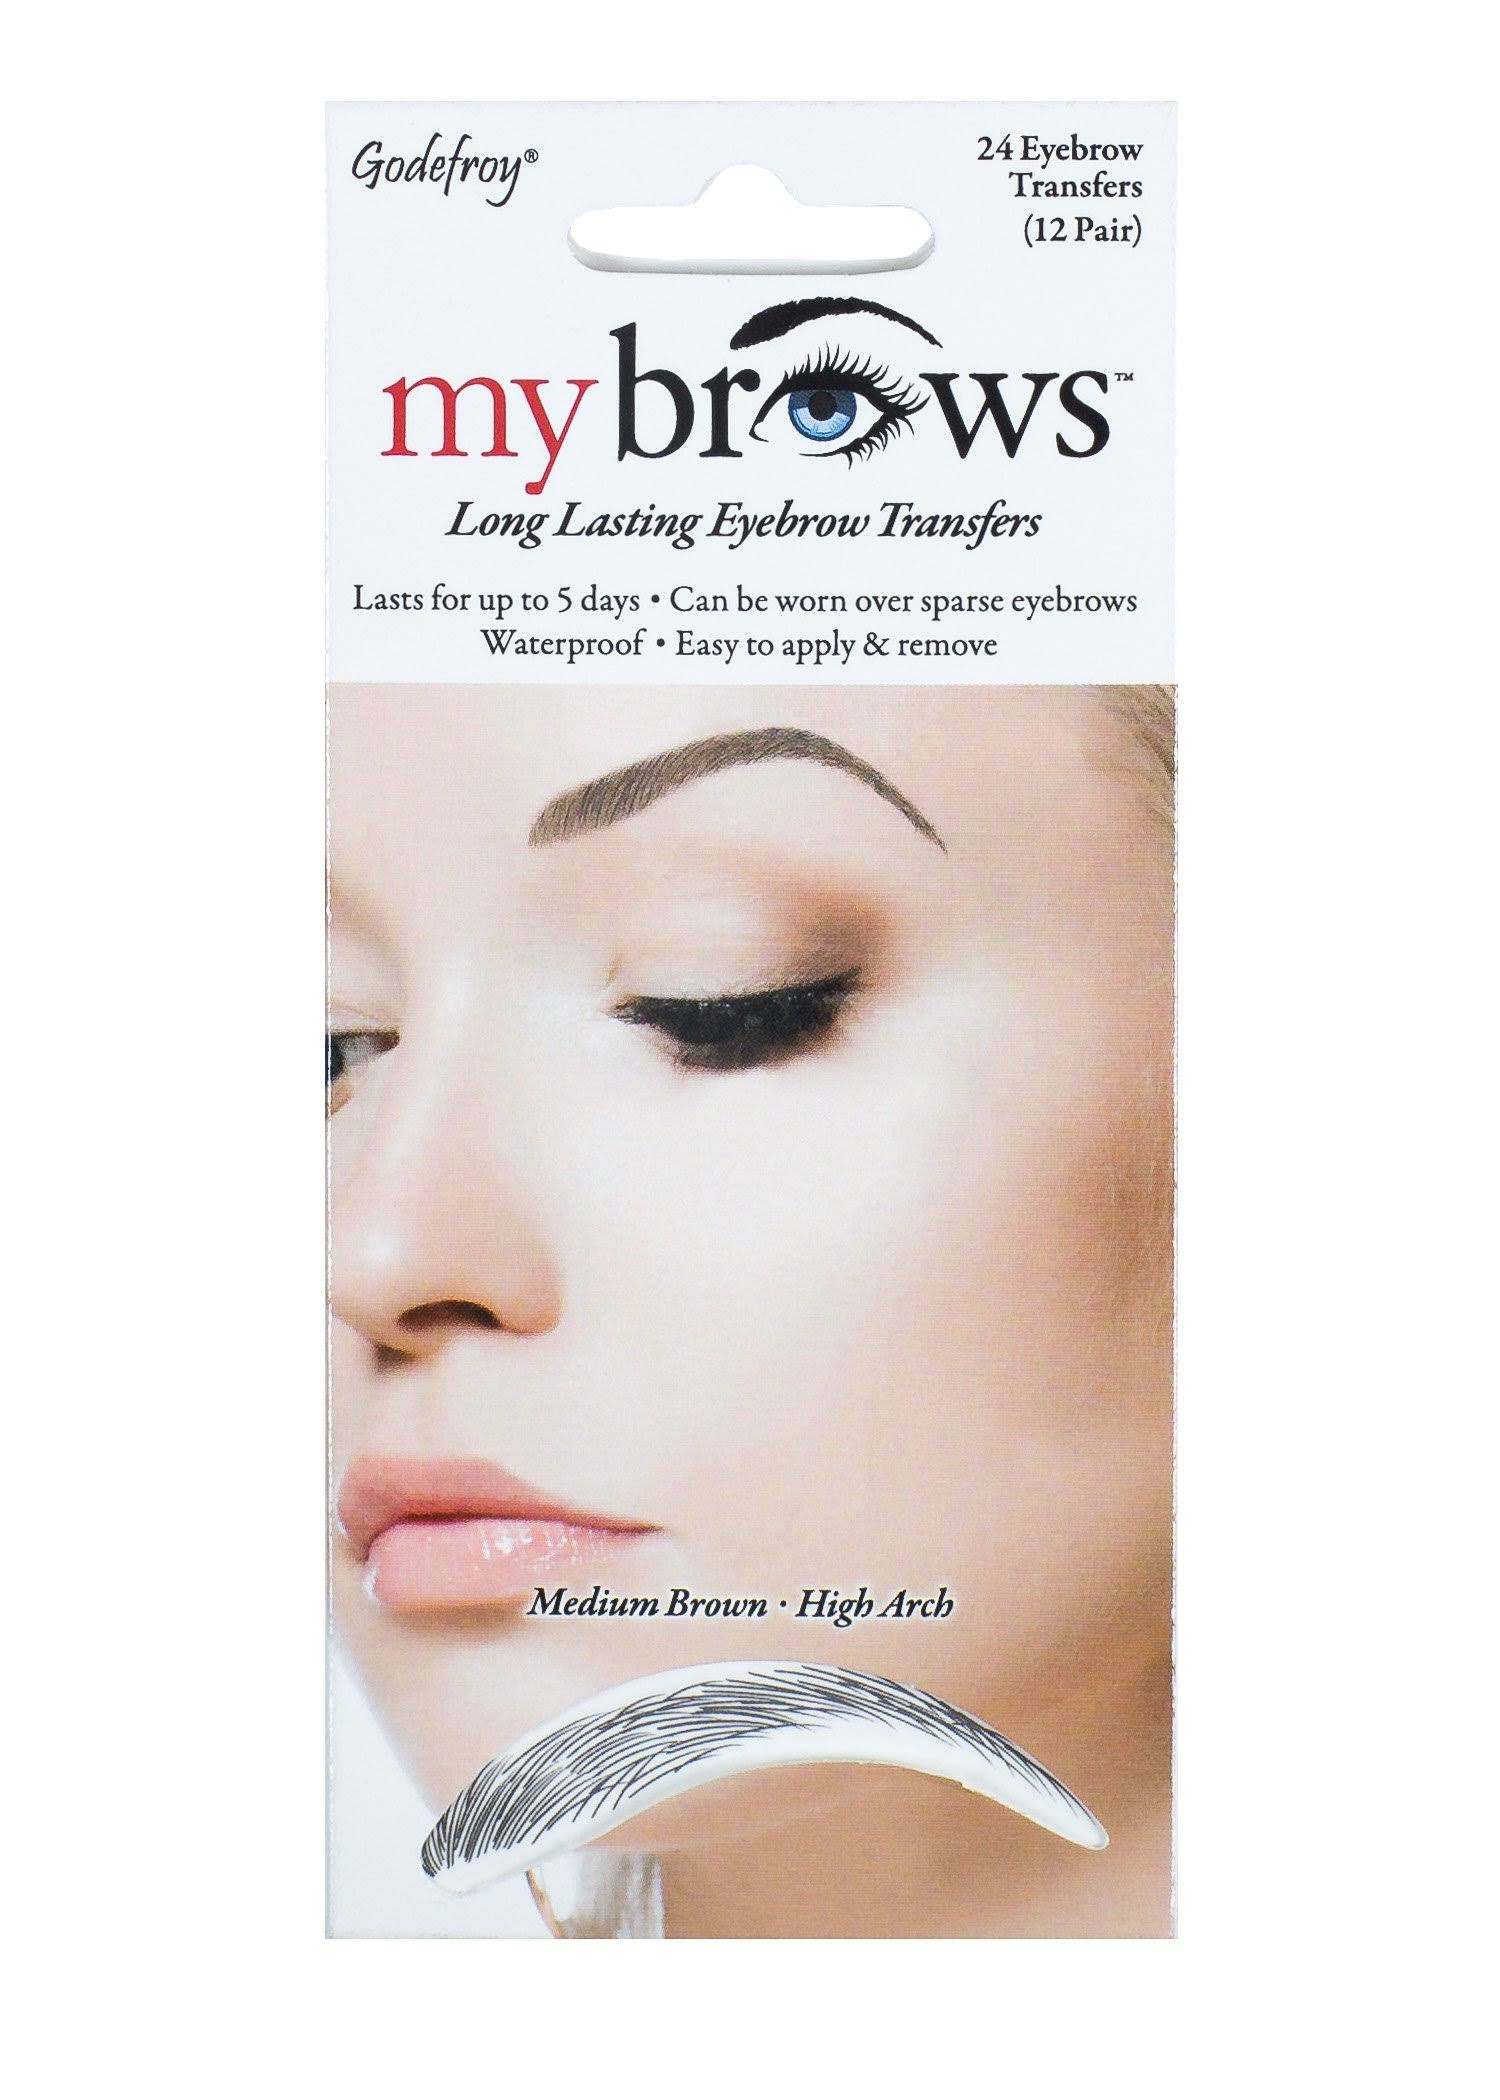 Godefroy My Brows Temporay Eyebrow Transfers - High Arch, Medium Brown